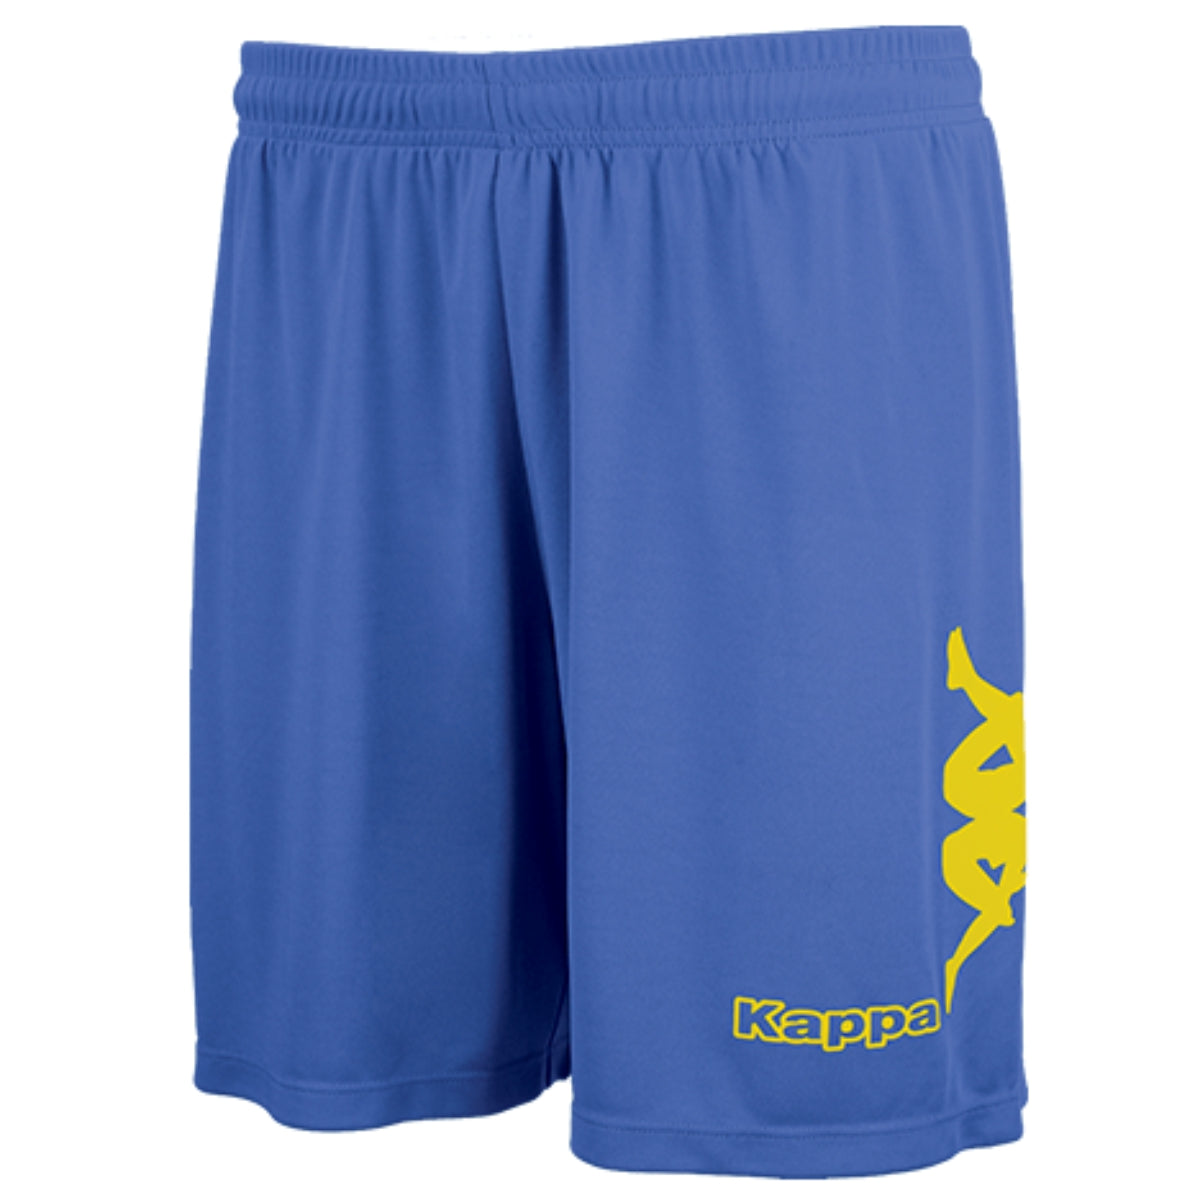 Kappa Talbino short in blue nautic with yellow Omini printed on the leg